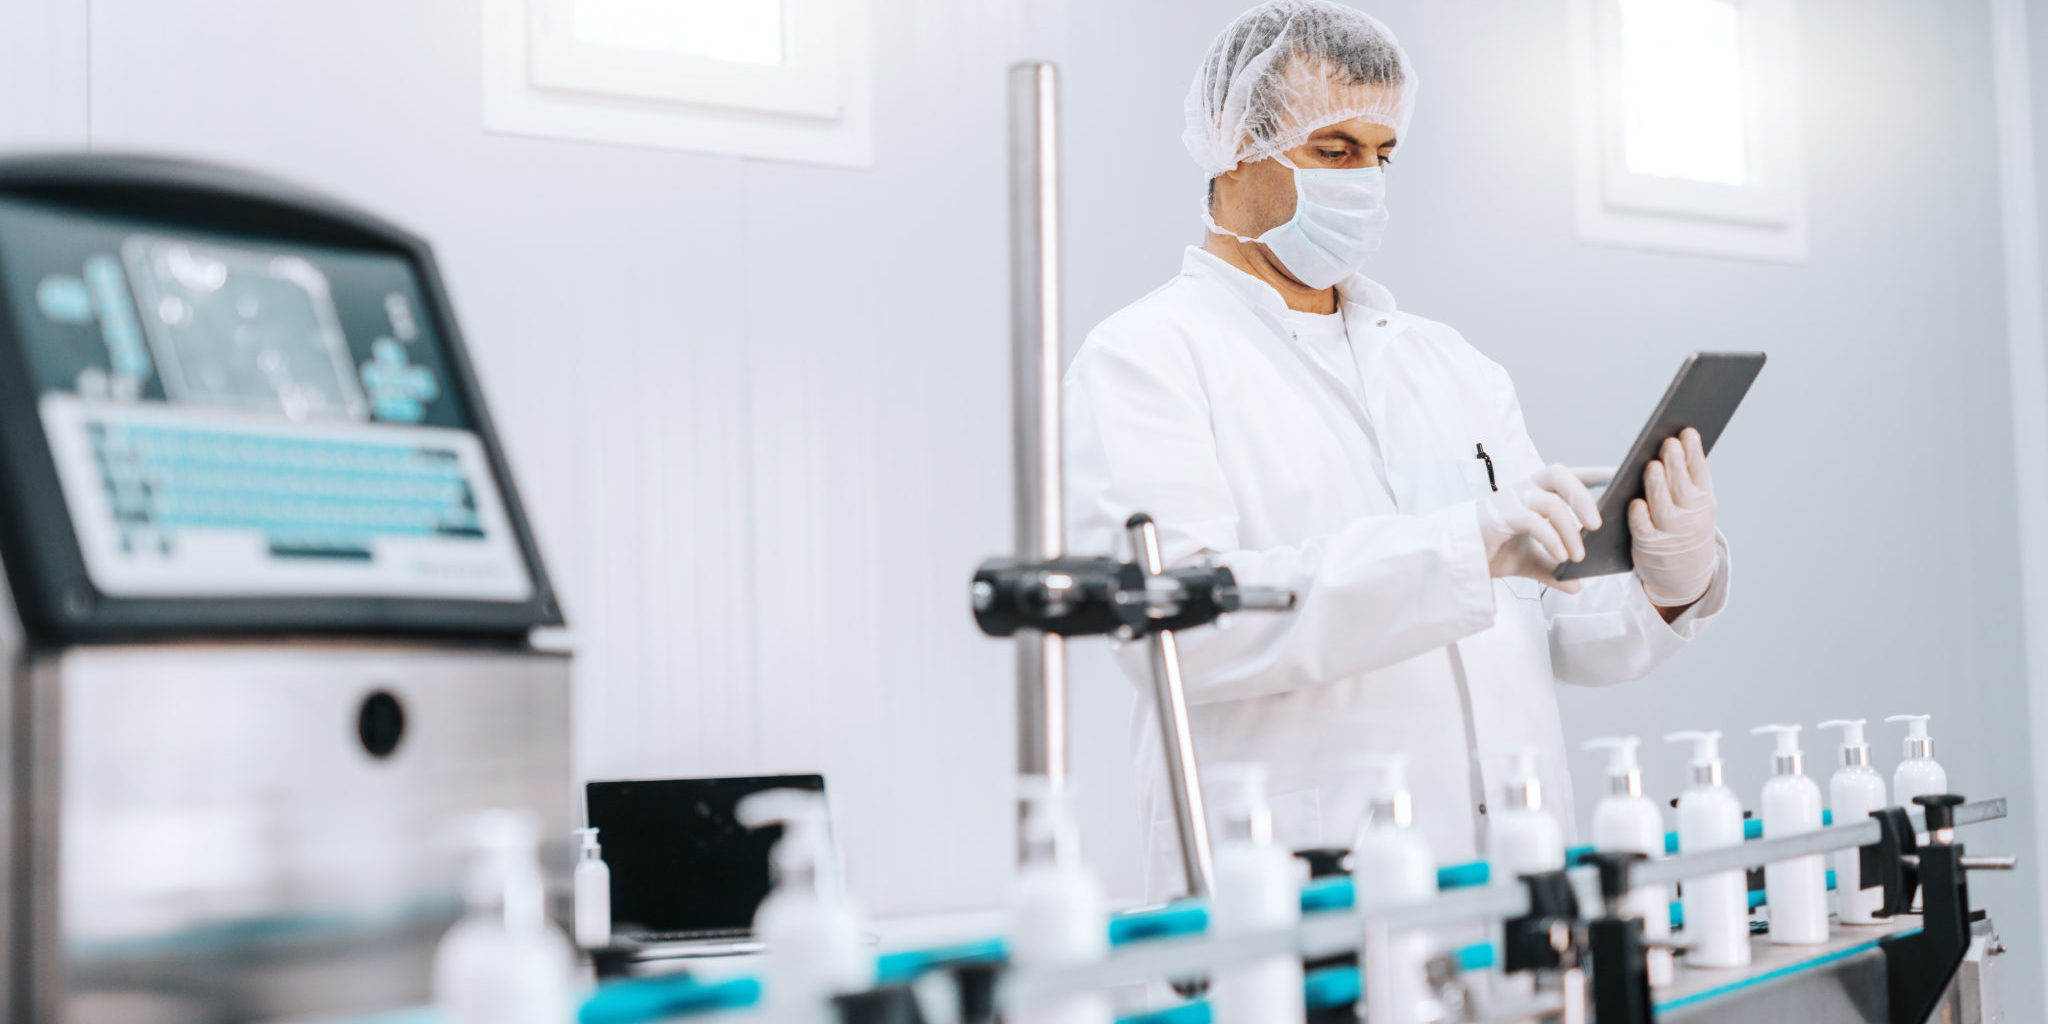 Portrait of Caucasian chemist in sterile uniform using tablet while standing next to machine with liquid soaps. Chemical factory interior.